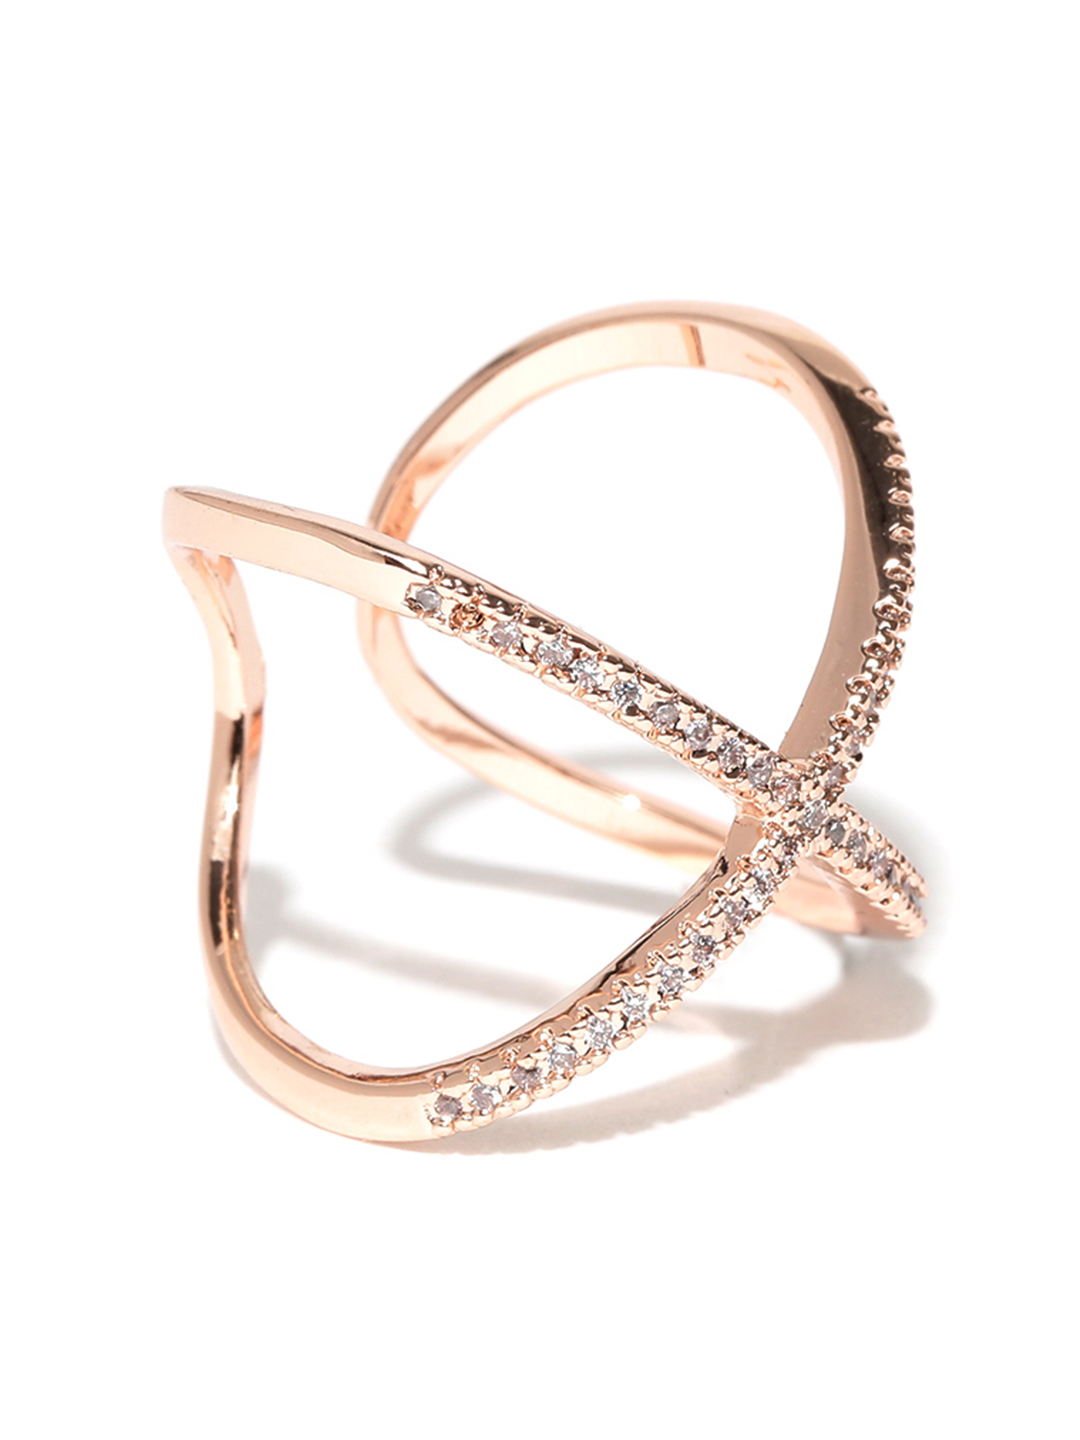 Jewels Galaxy 18K Rose Gold-Plated Zircon Stone-Studded Adjustable Ring Price in India